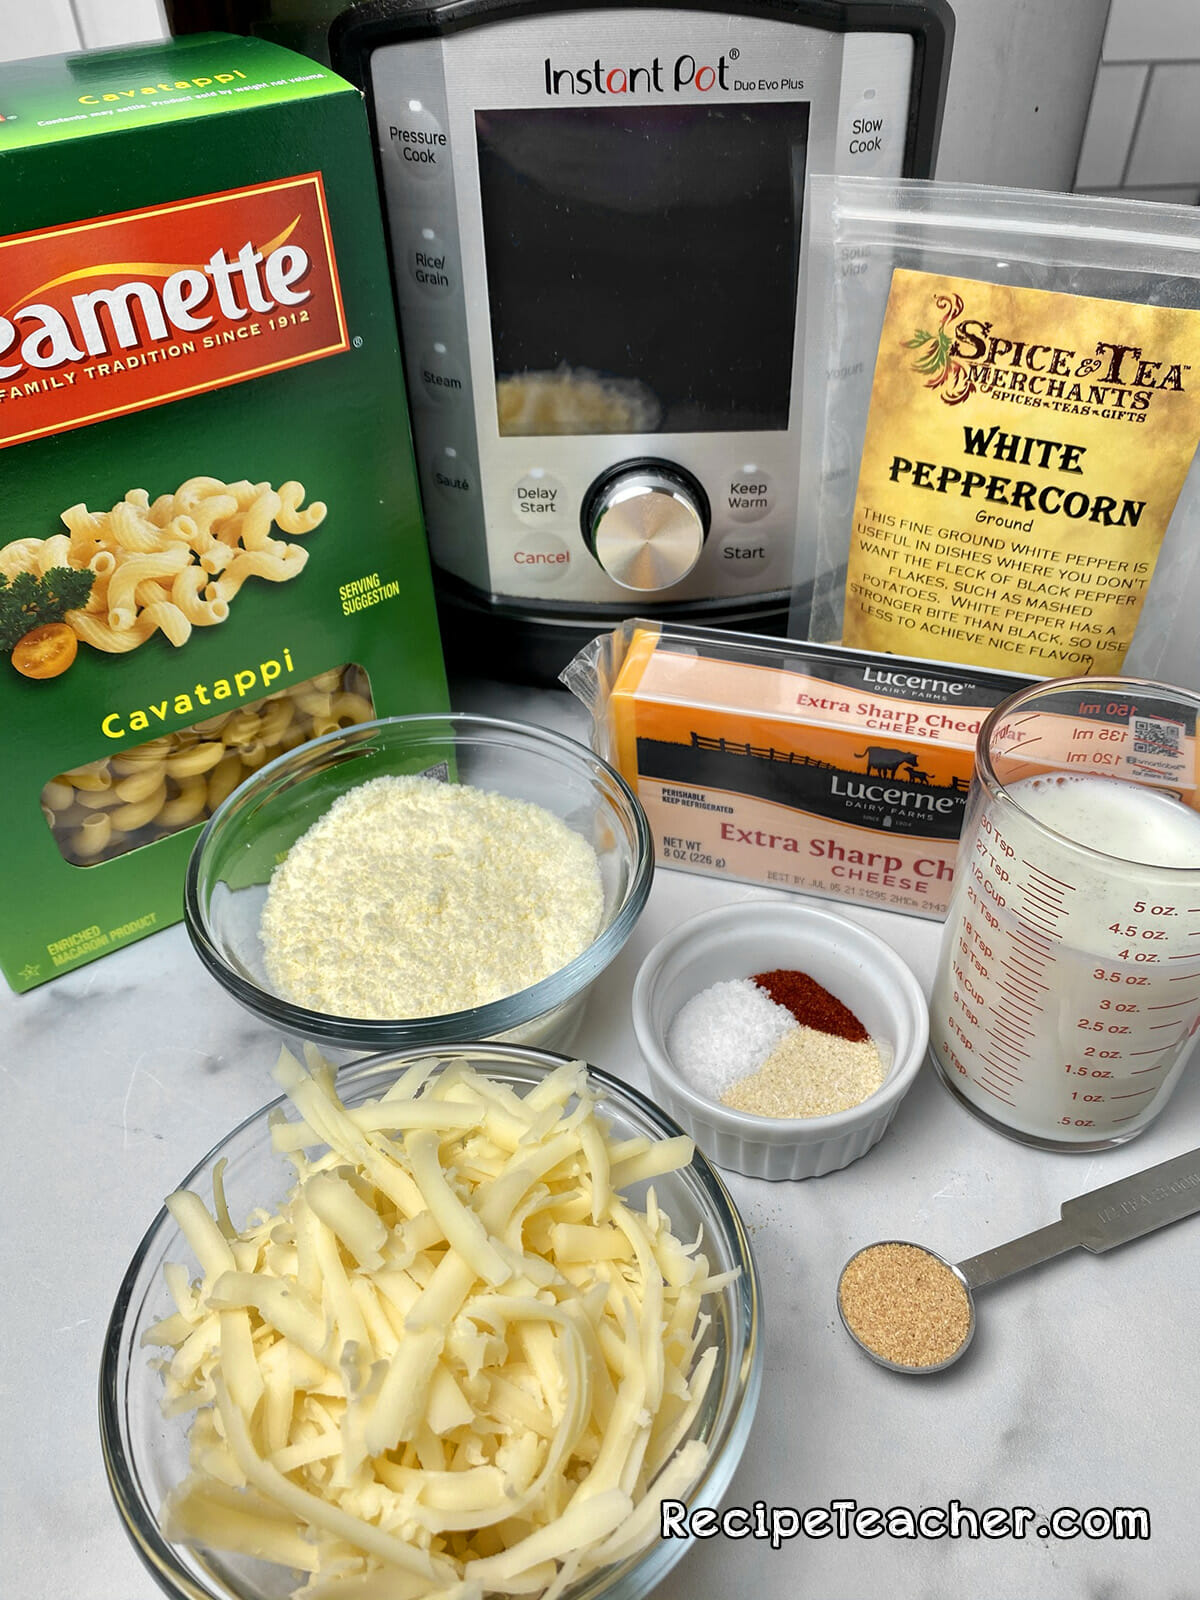 Instant Pot mac and cheese recipe.